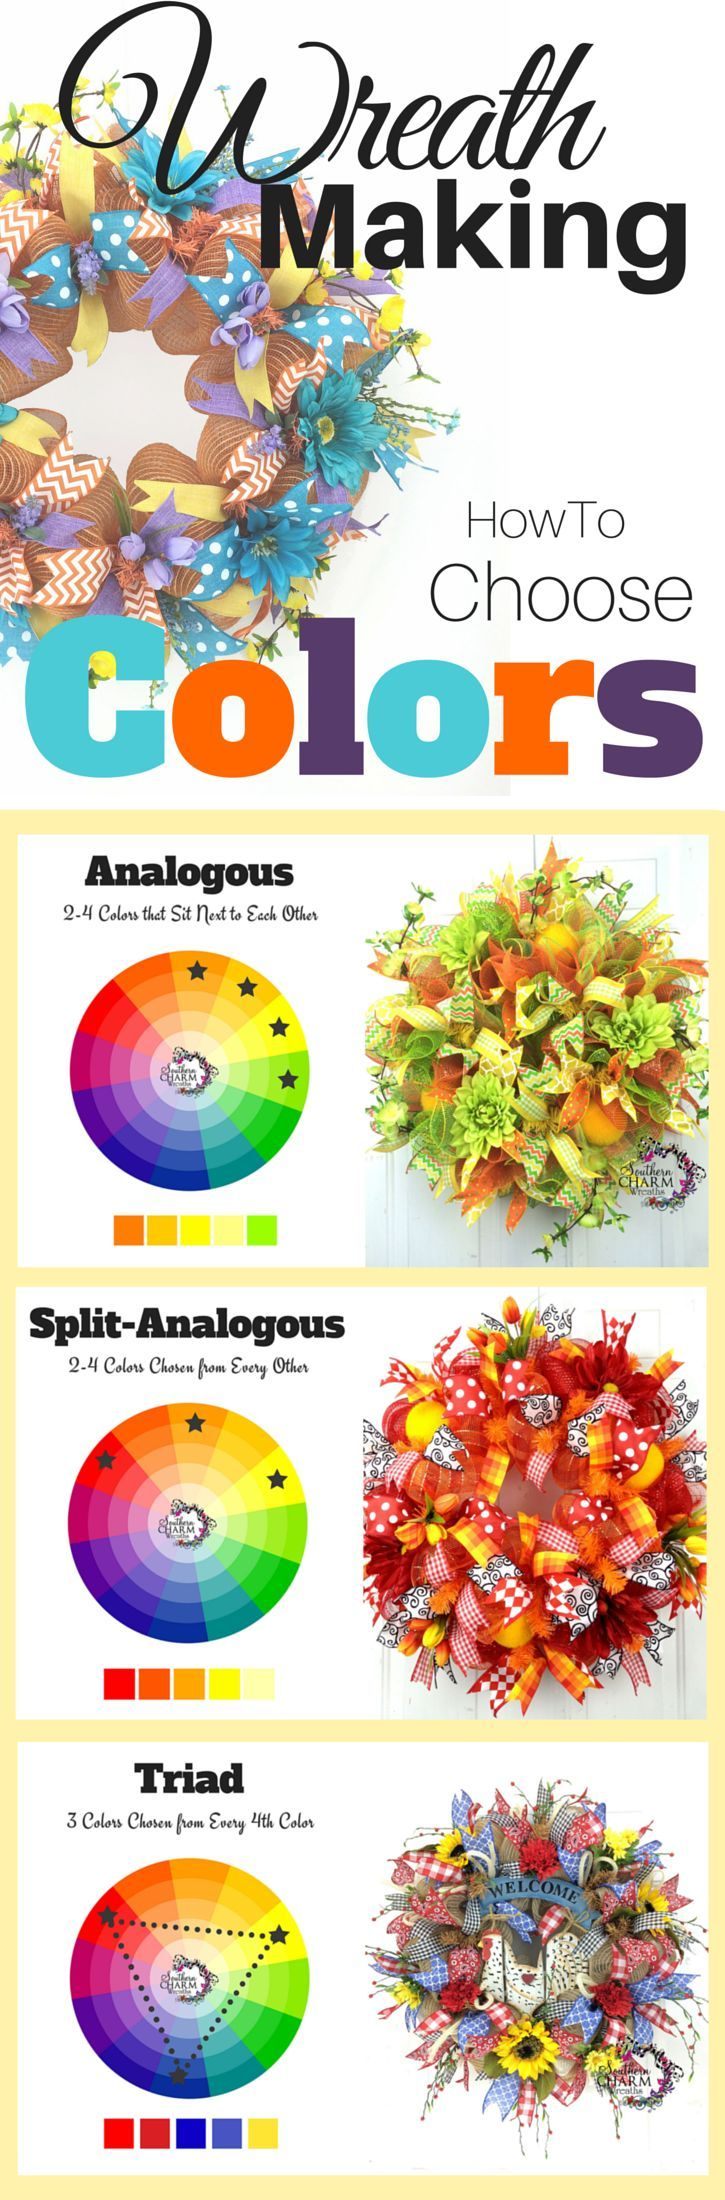 Wreath Making  How To Choose Colors For Wreaths! I Get Asked All The Time